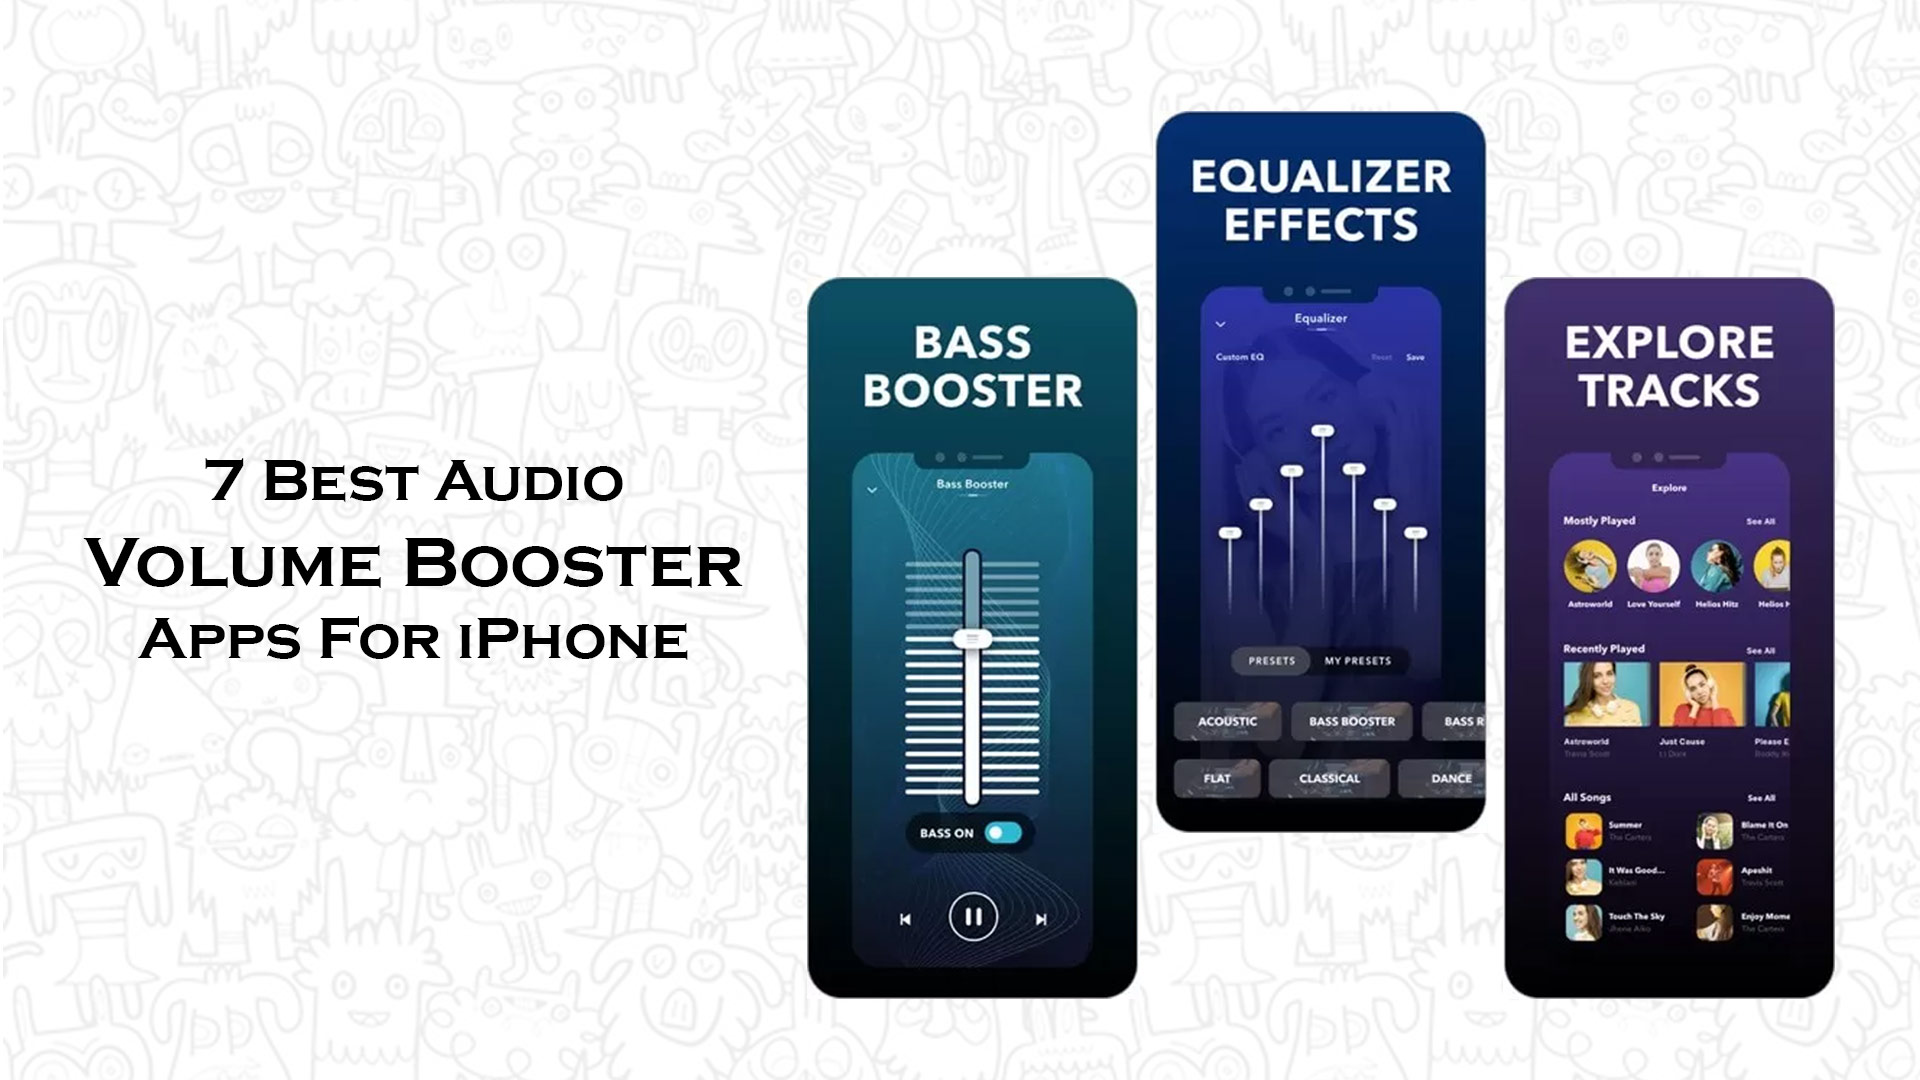 7 Best Audio Volume Booster Apps For iPhone